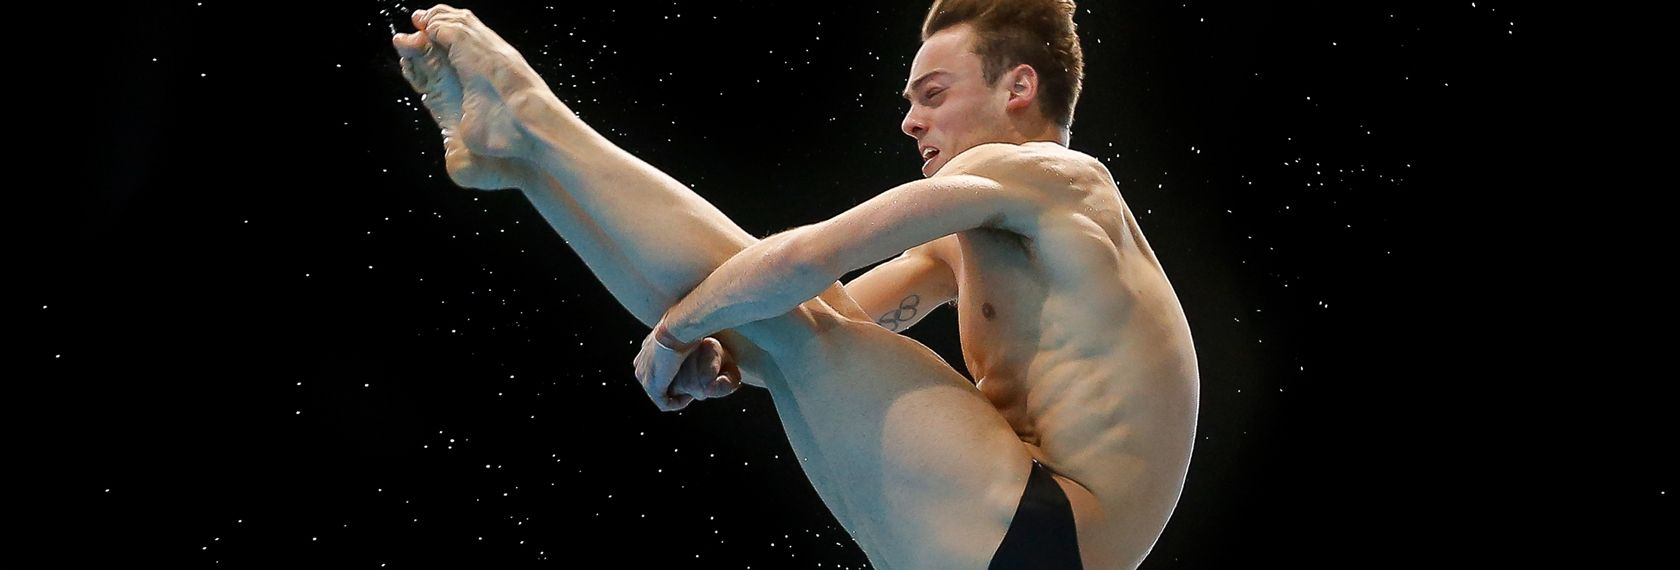 tom_daley_pike_dive_2015.jpg